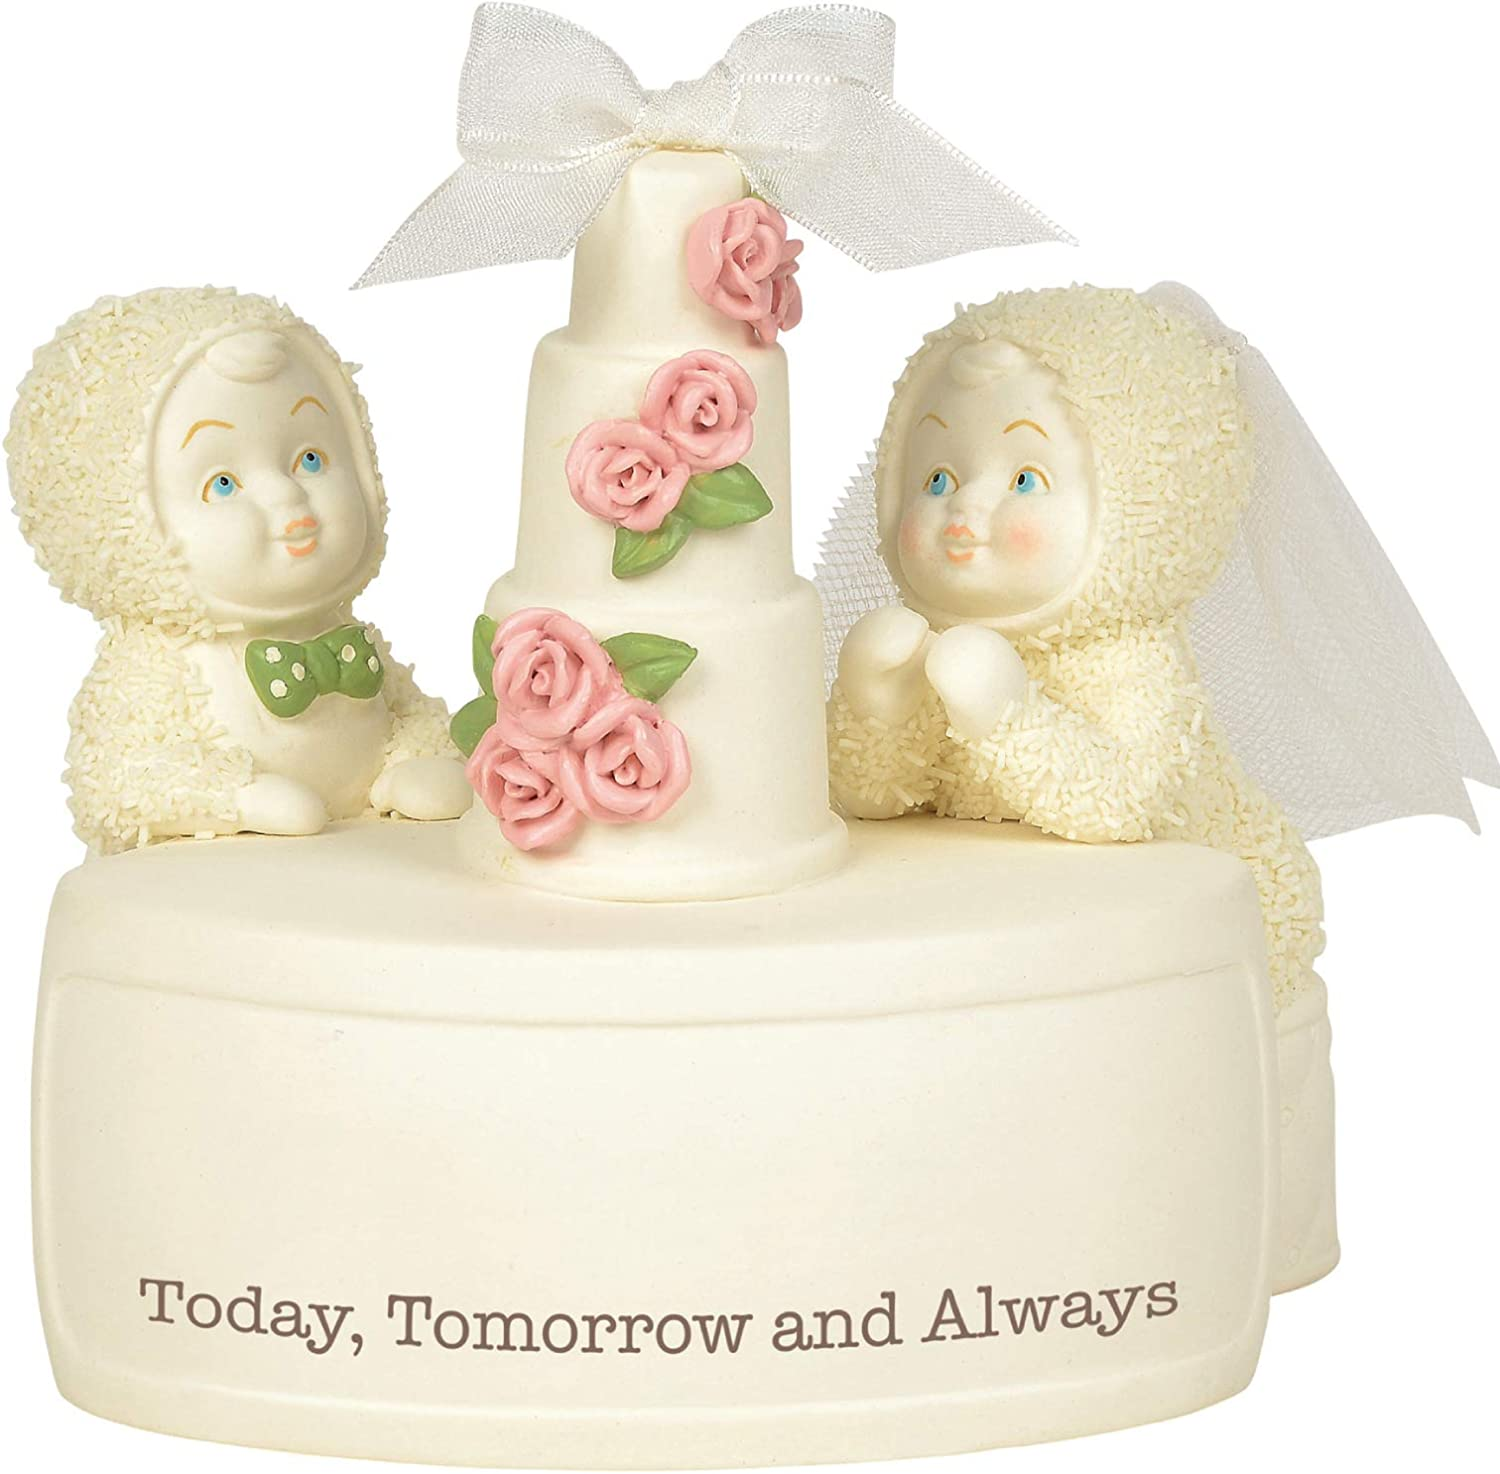 Department 56 Snowbabies Classics Today Tomorrow and Always Figurine, 4.375 Inch, Multicolor